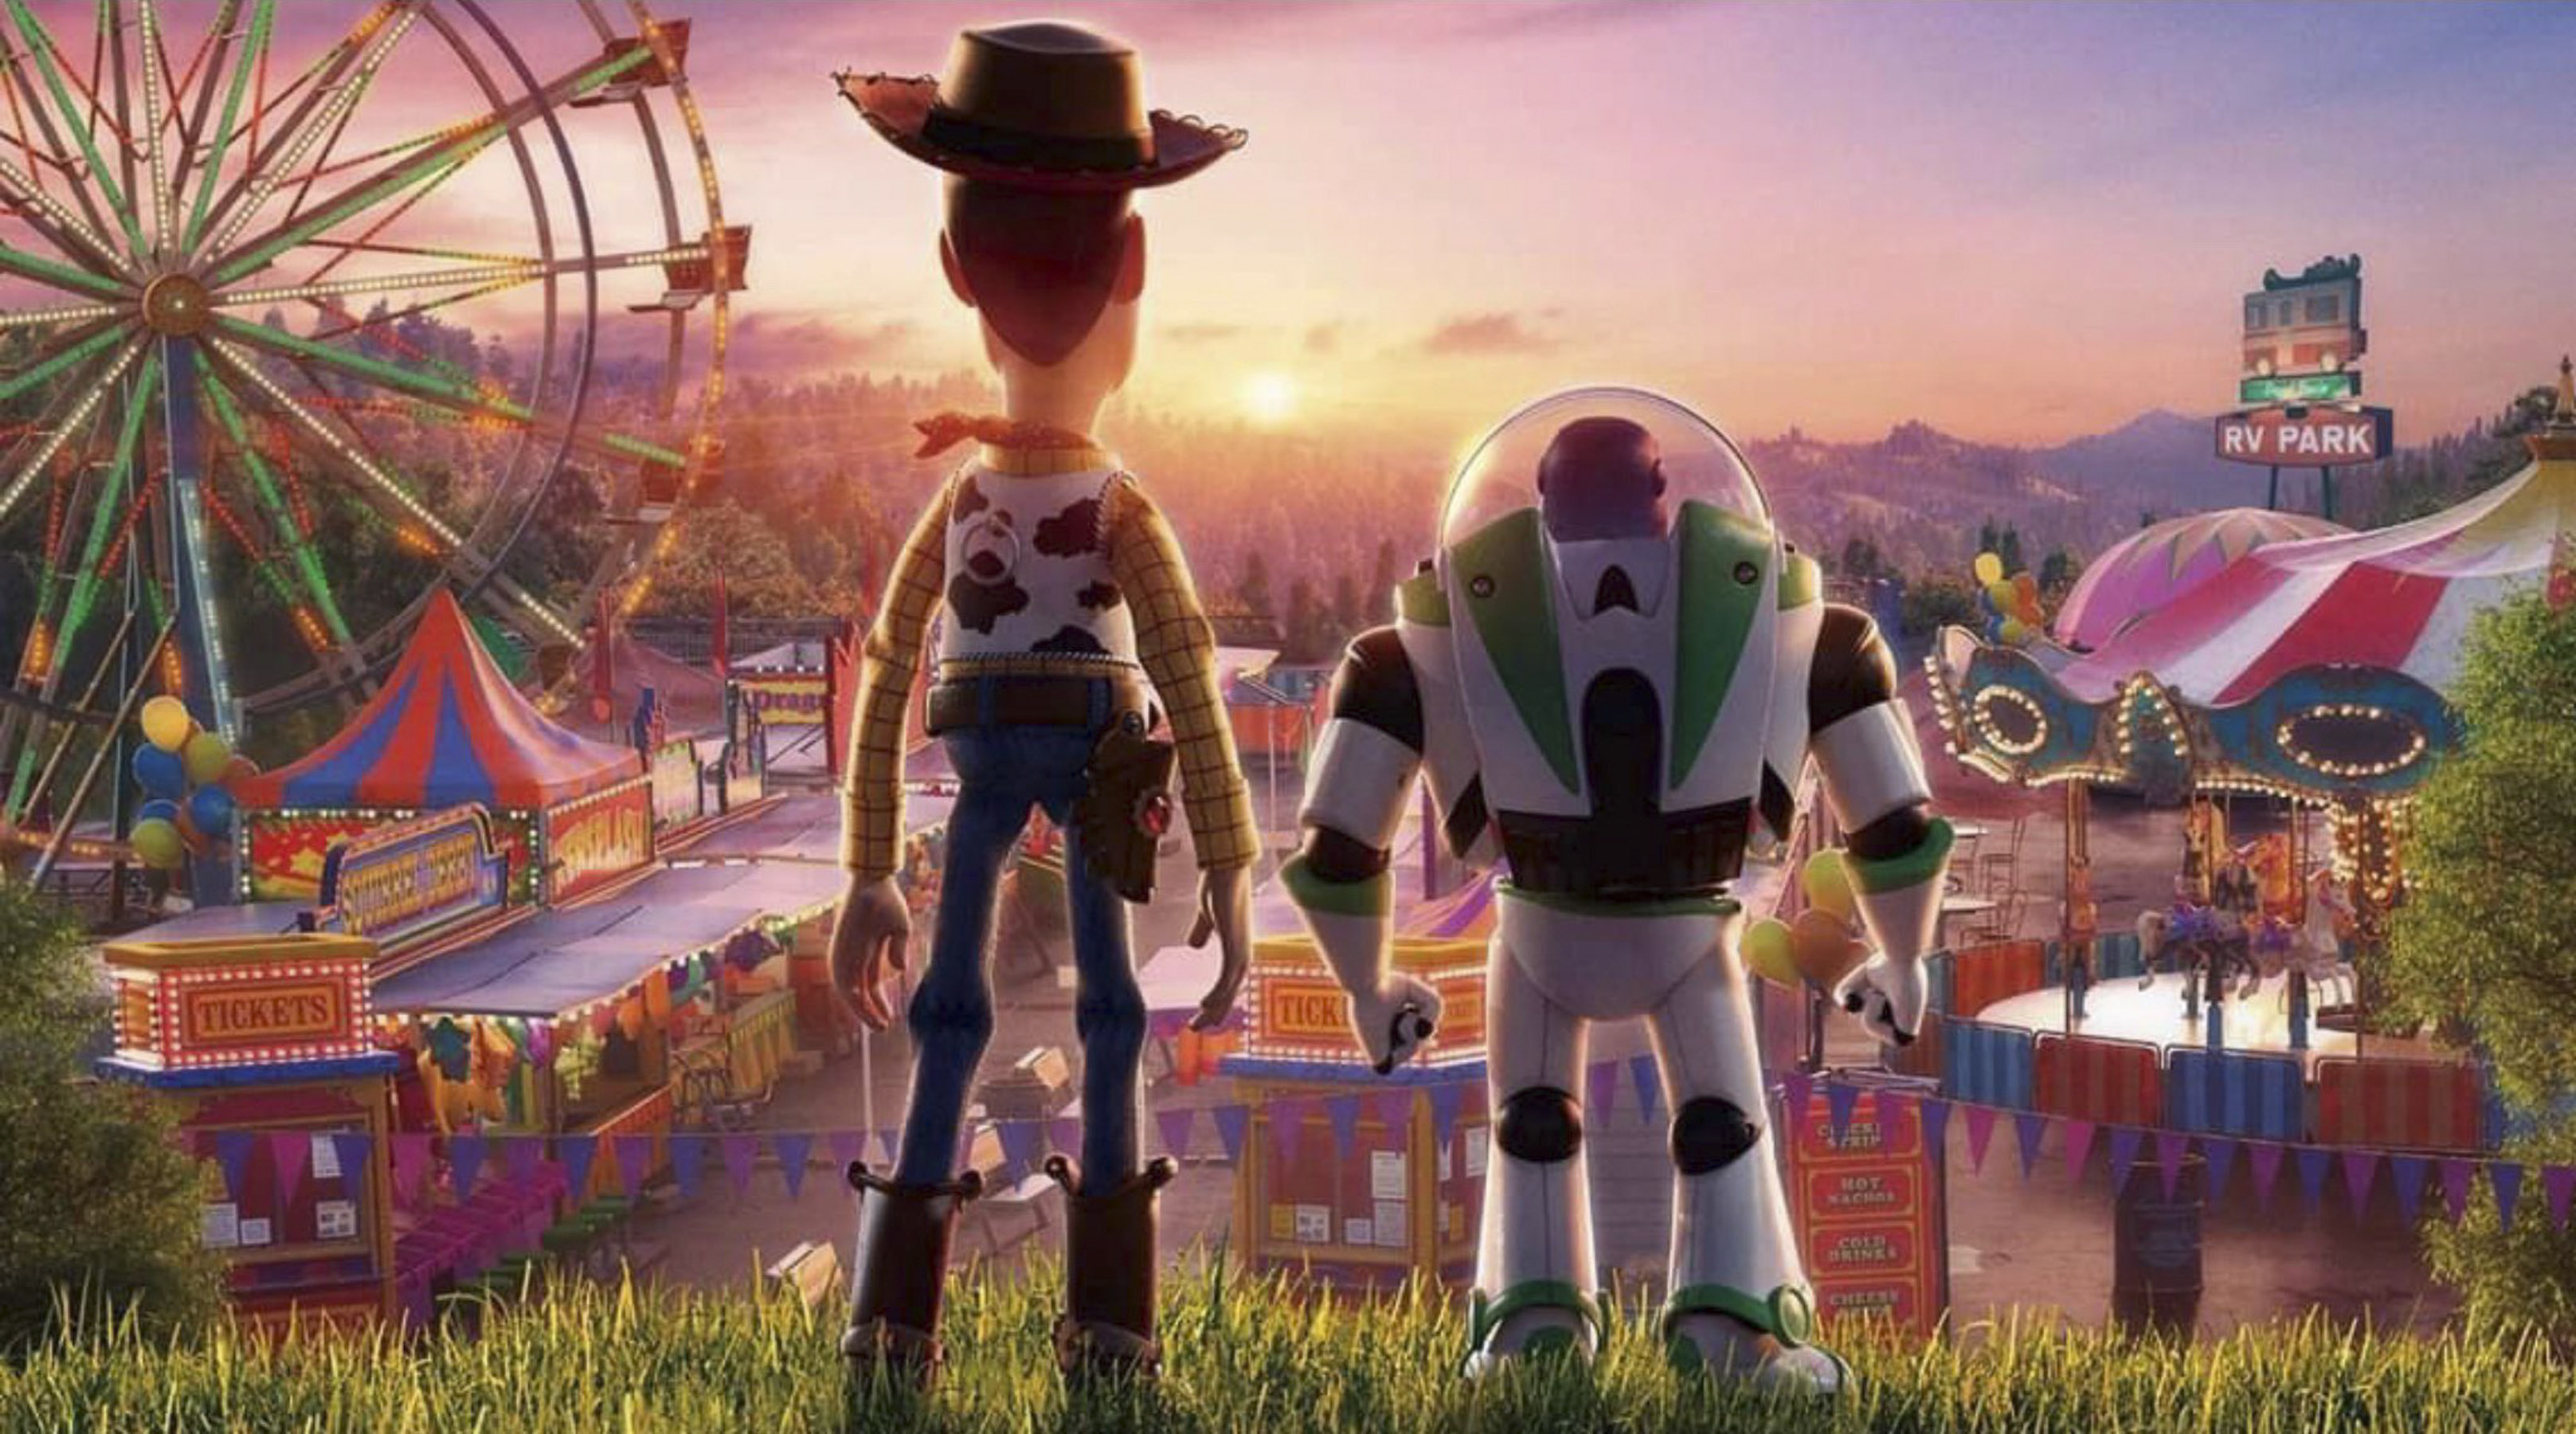 Movie Review - Toy Story 4